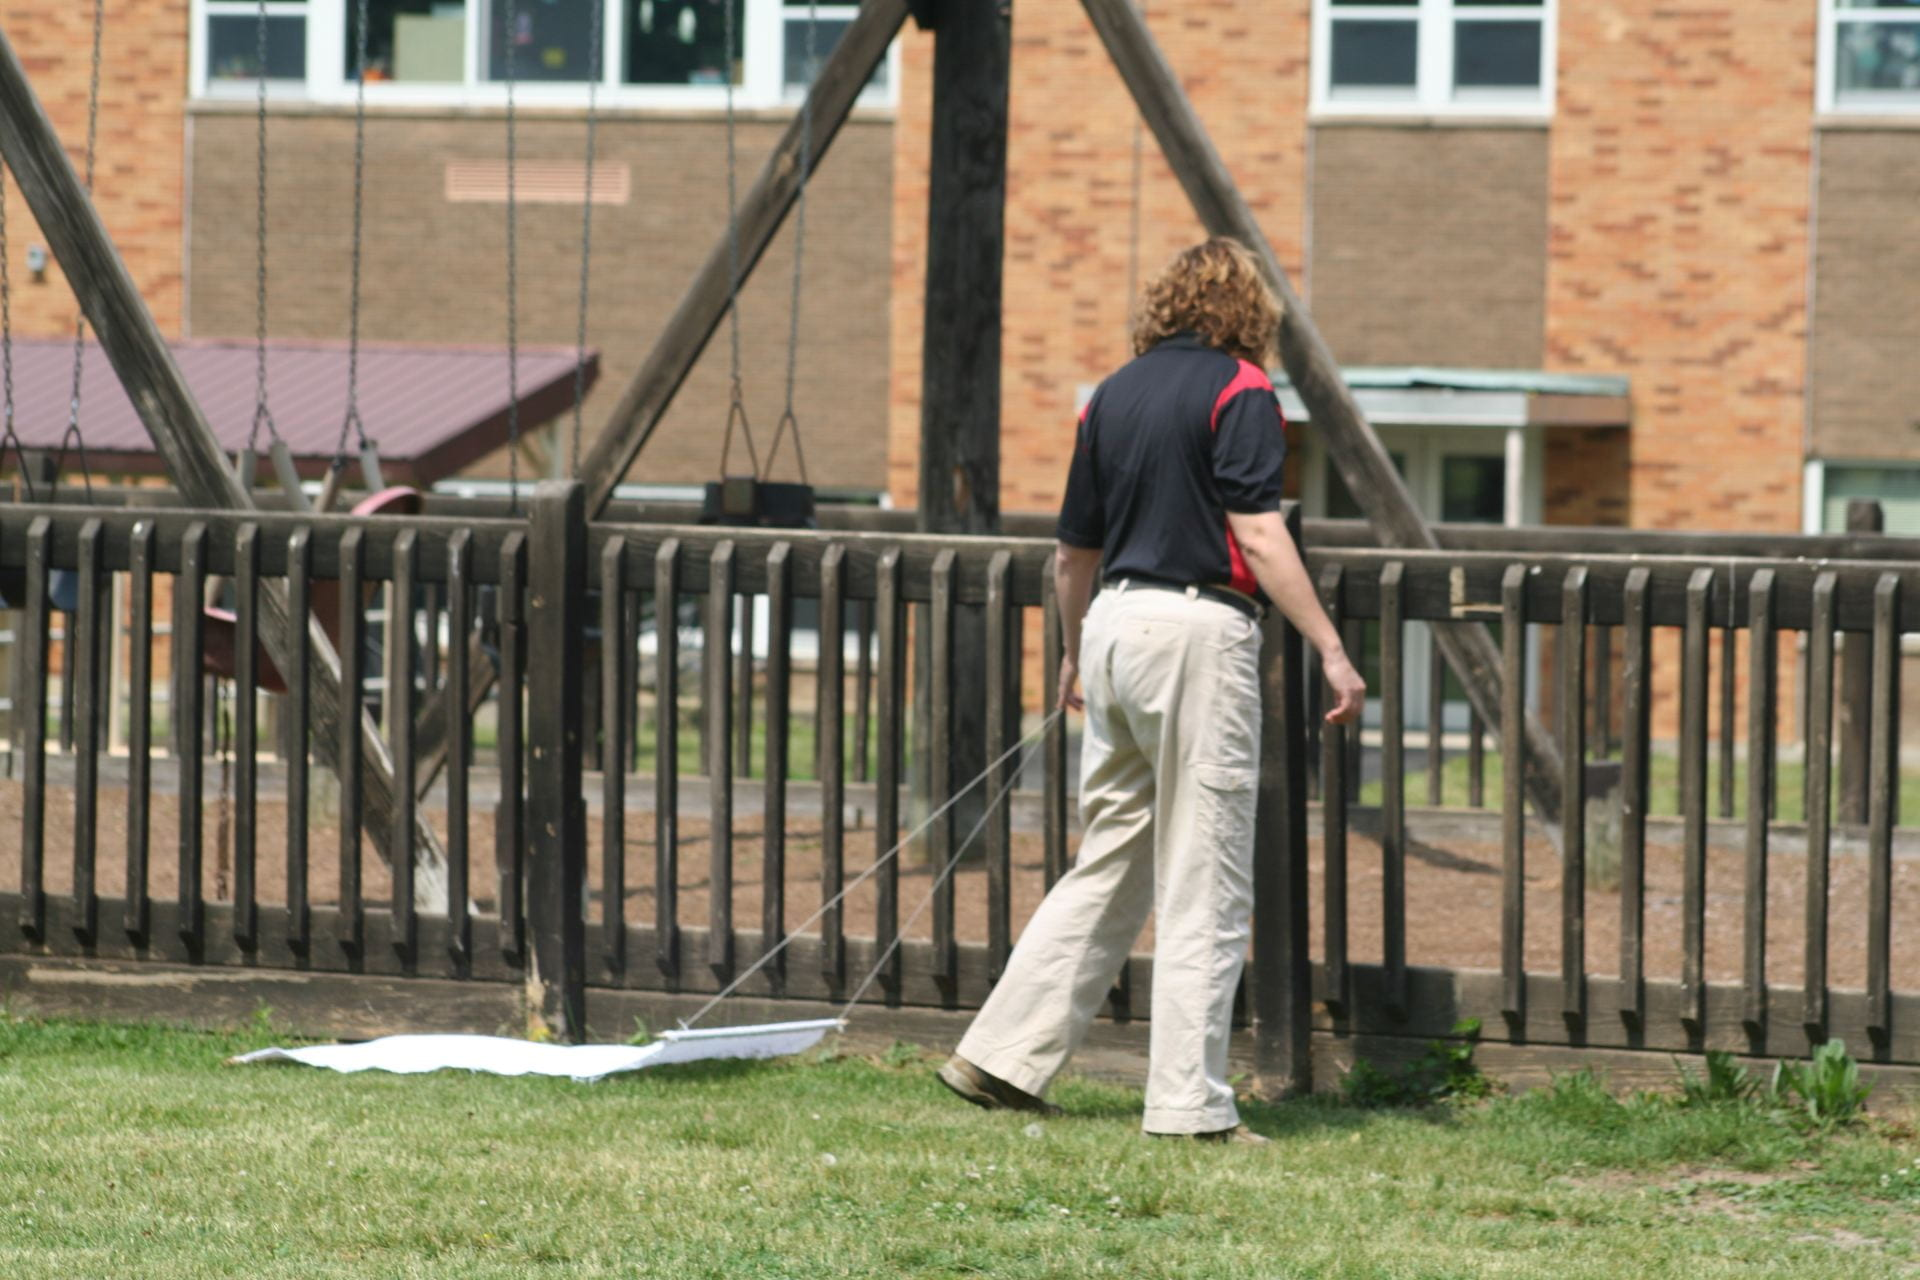 photo shows Joellen Lampman using a tick drag on school property to monitor for ticks